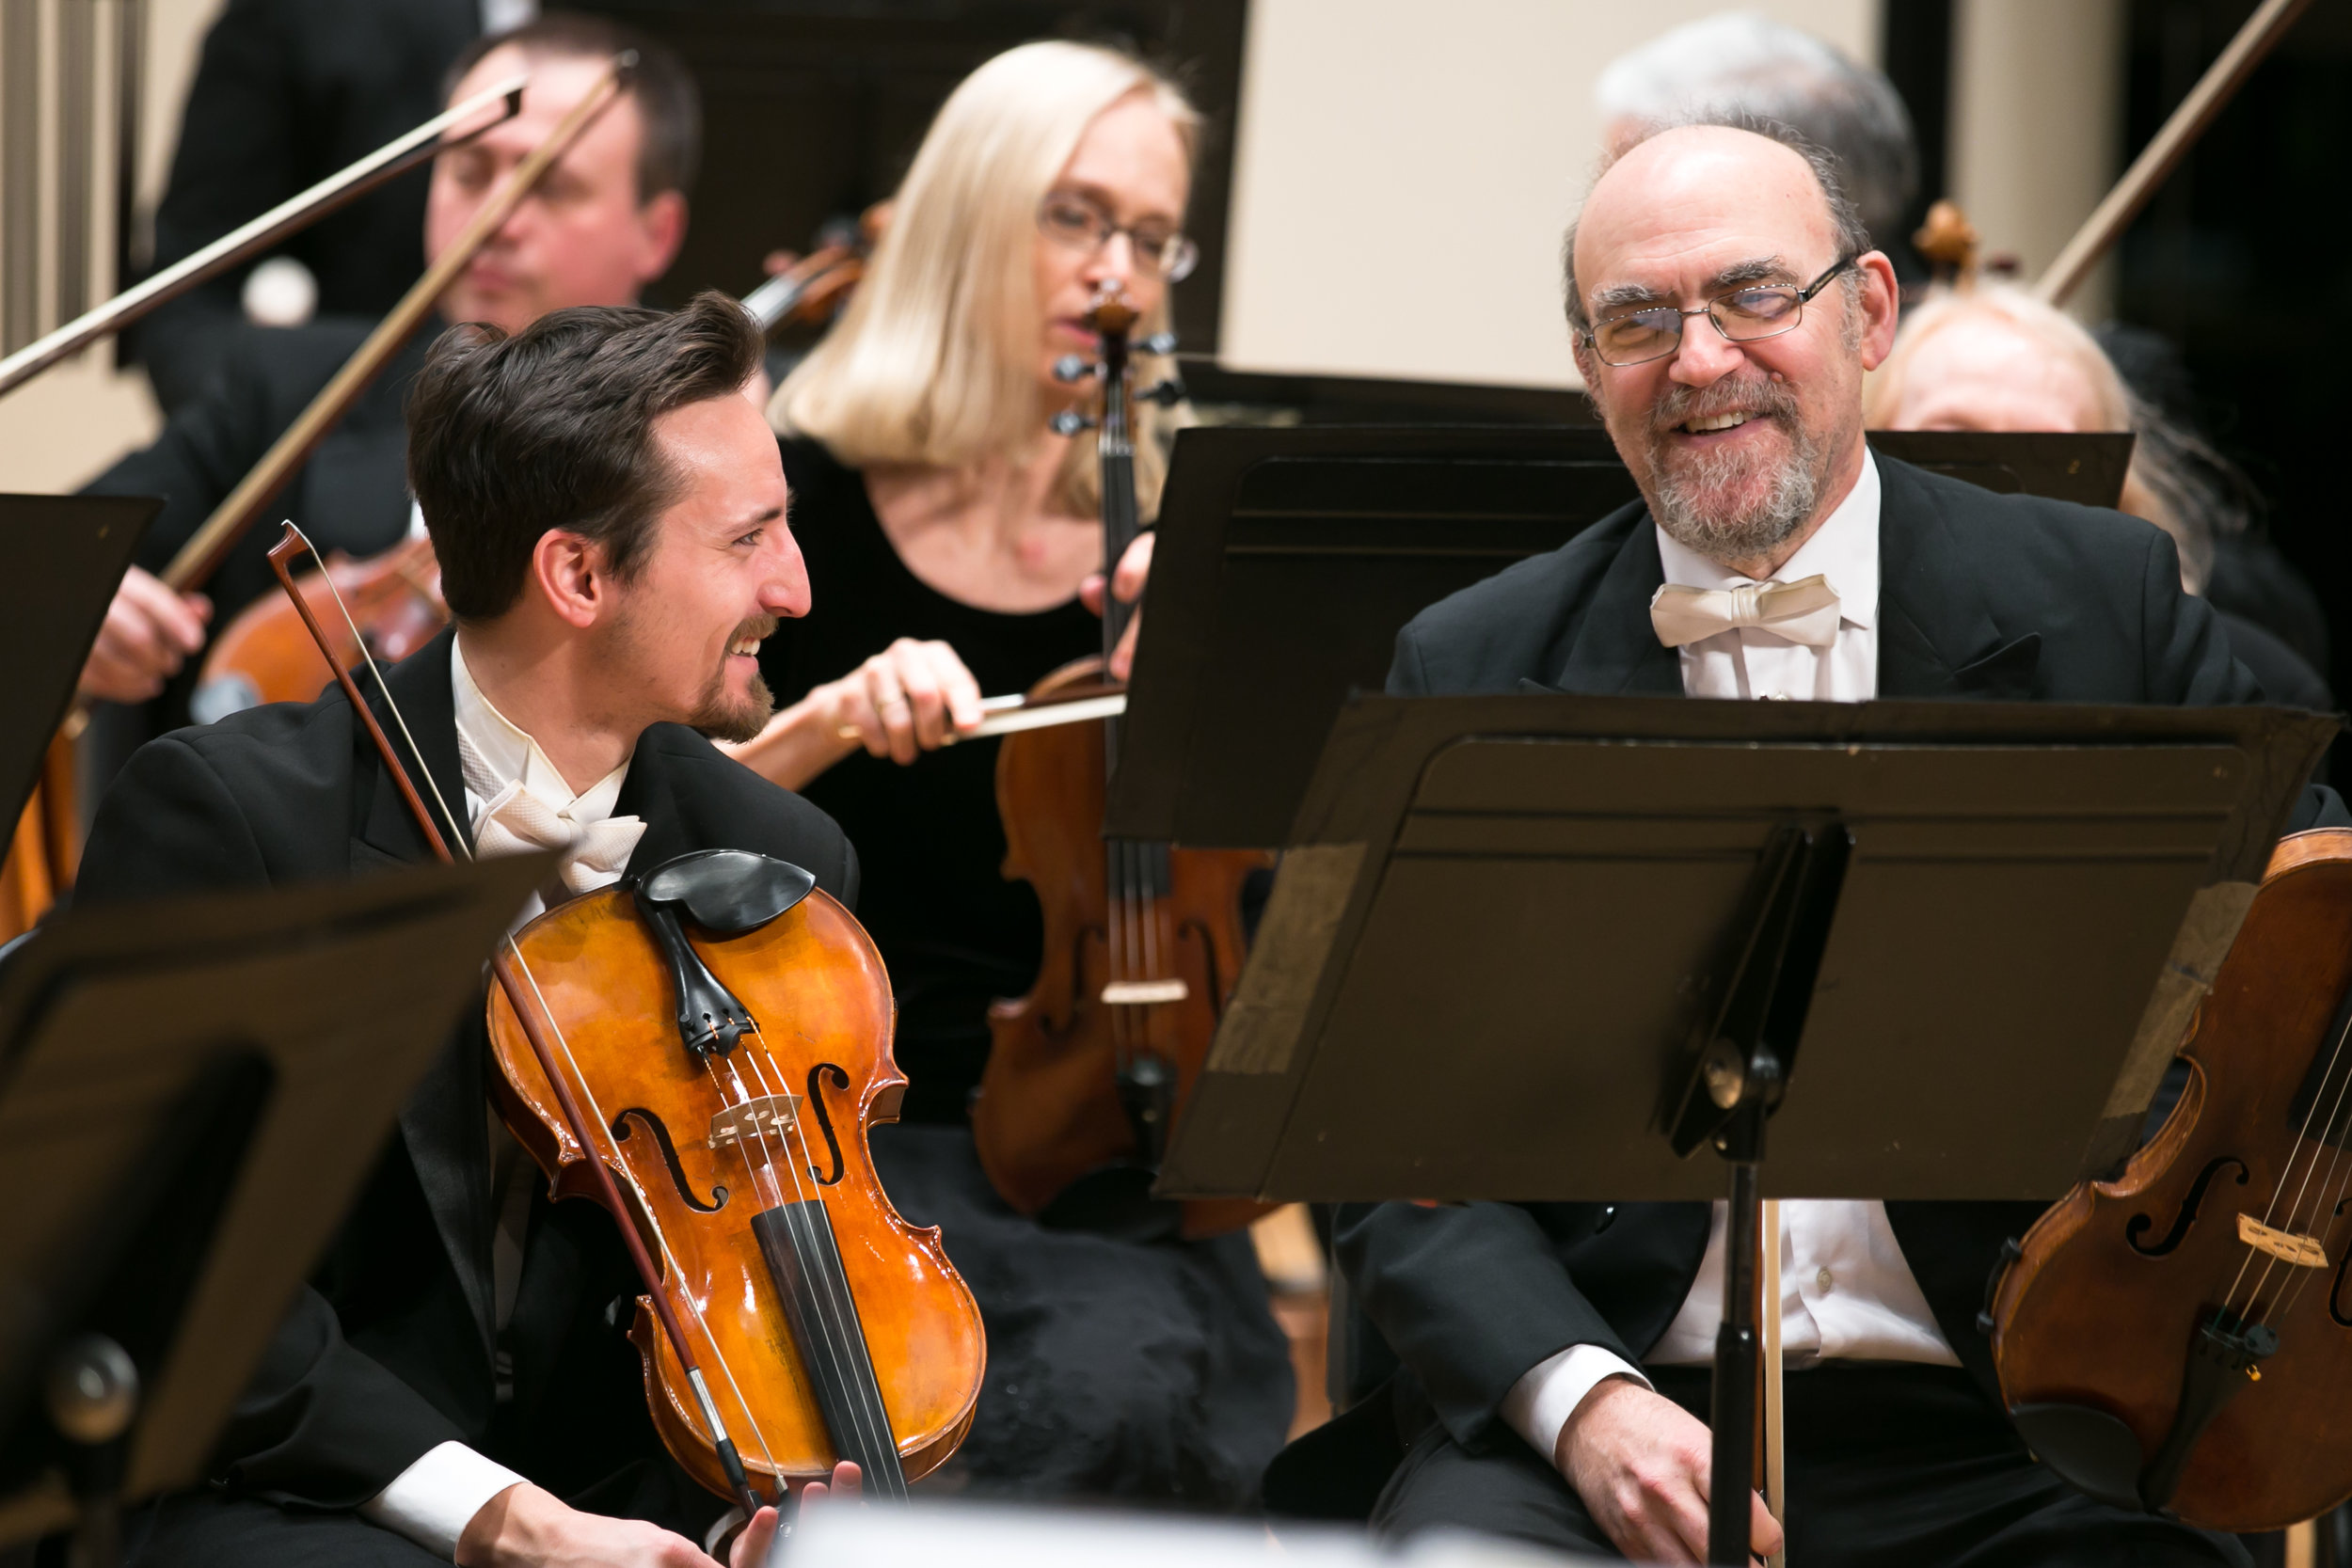 Symphony Annual Fund - Lake Forest Symphony's artistic, educational, and community programs are possible through the generous support of individuals, businesses, and organizations.